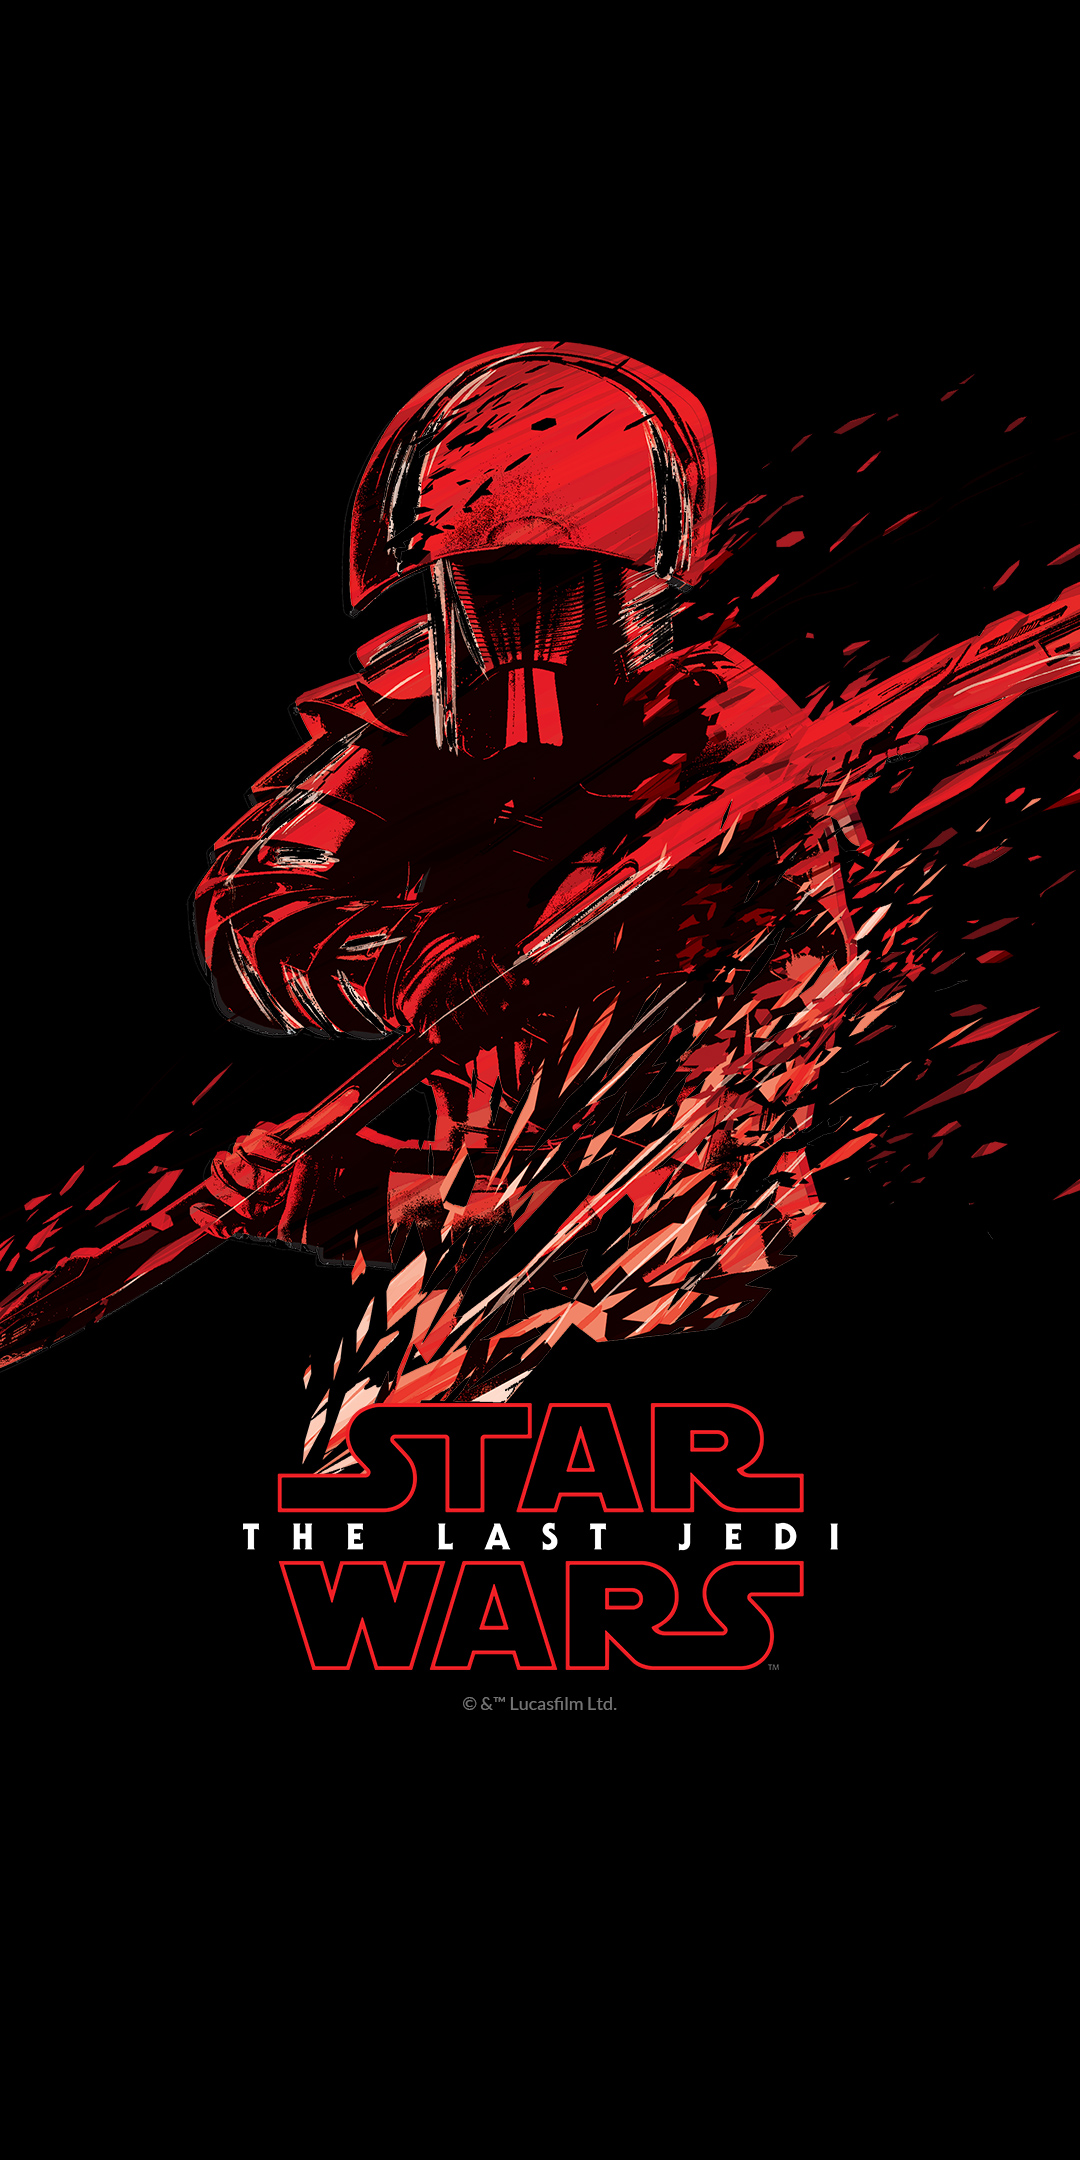 Star Wars Wallpaper 1080x2160 Wallpaper Teahub Io